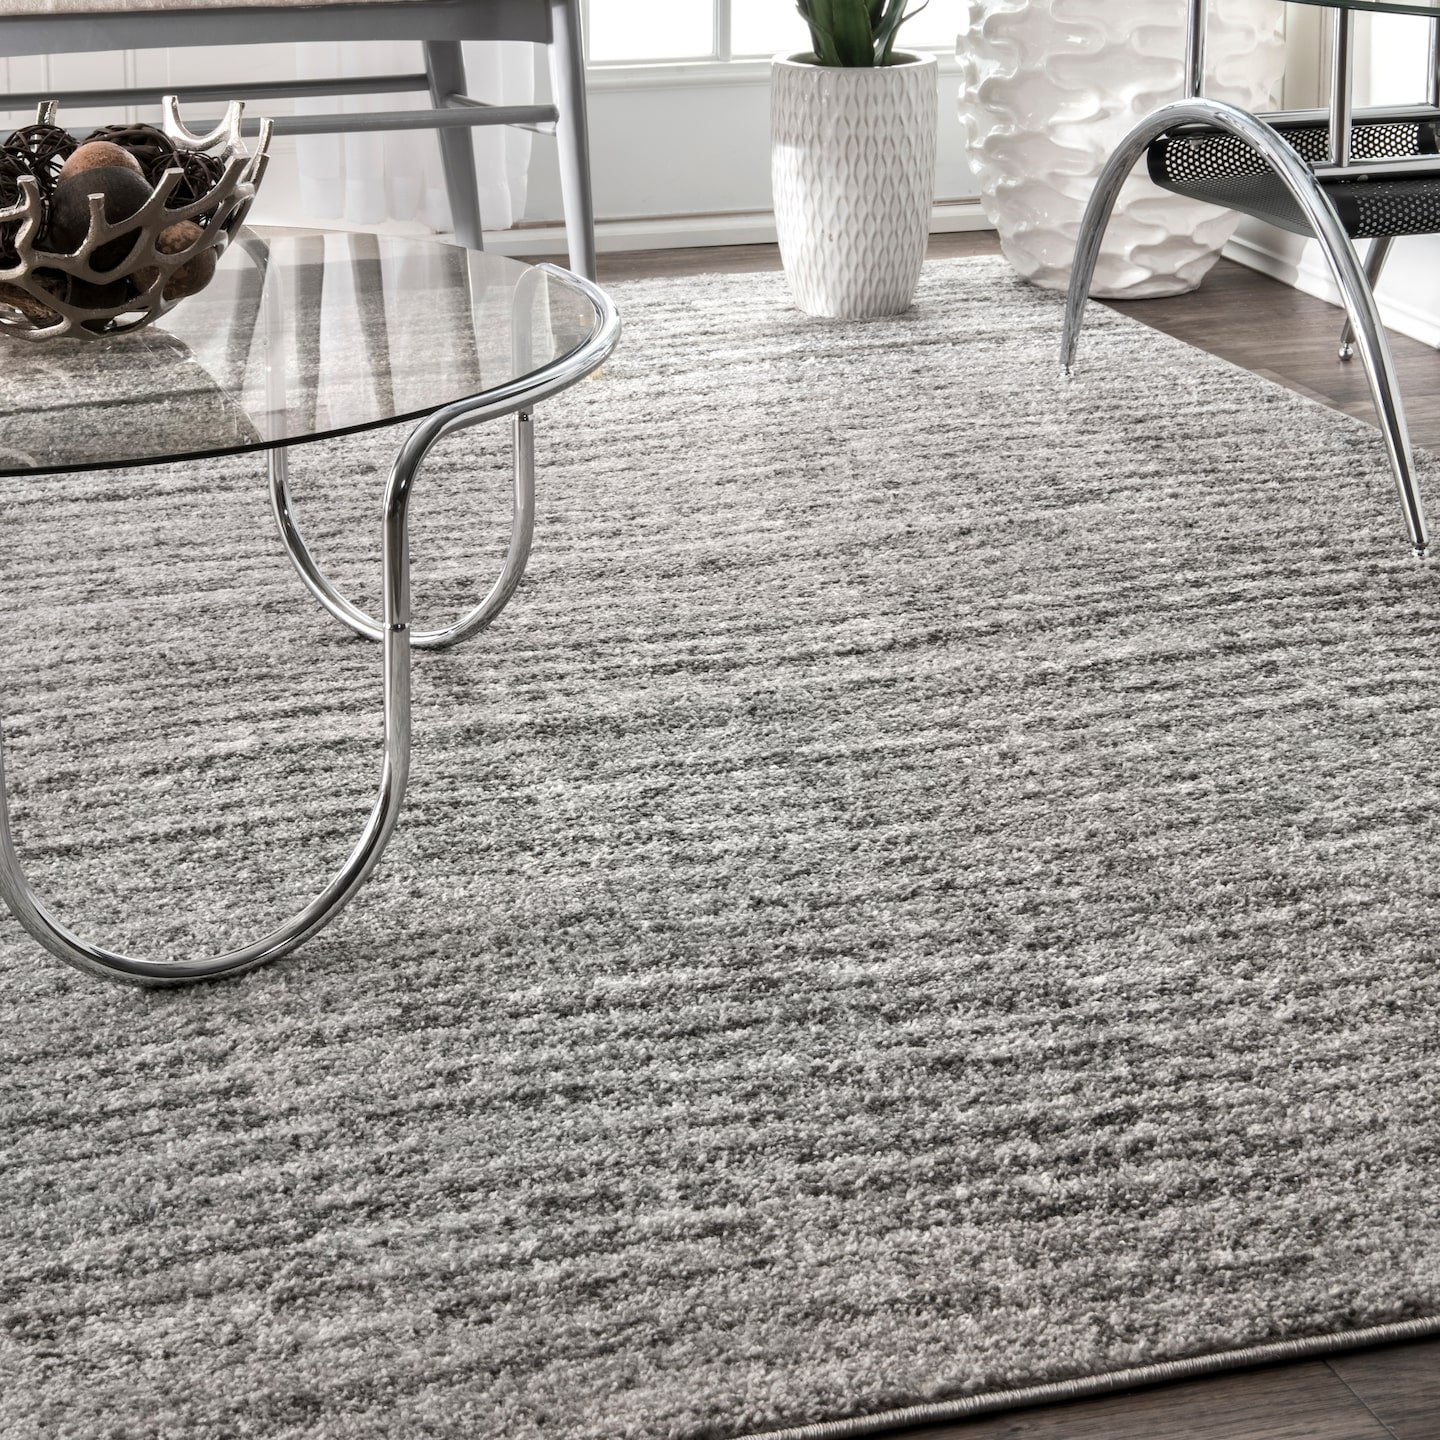 nuLOOM 200BDSM01A-508 Ripple Contemporary Sherill Area Rug, 5 x 8 , Grey, Gray